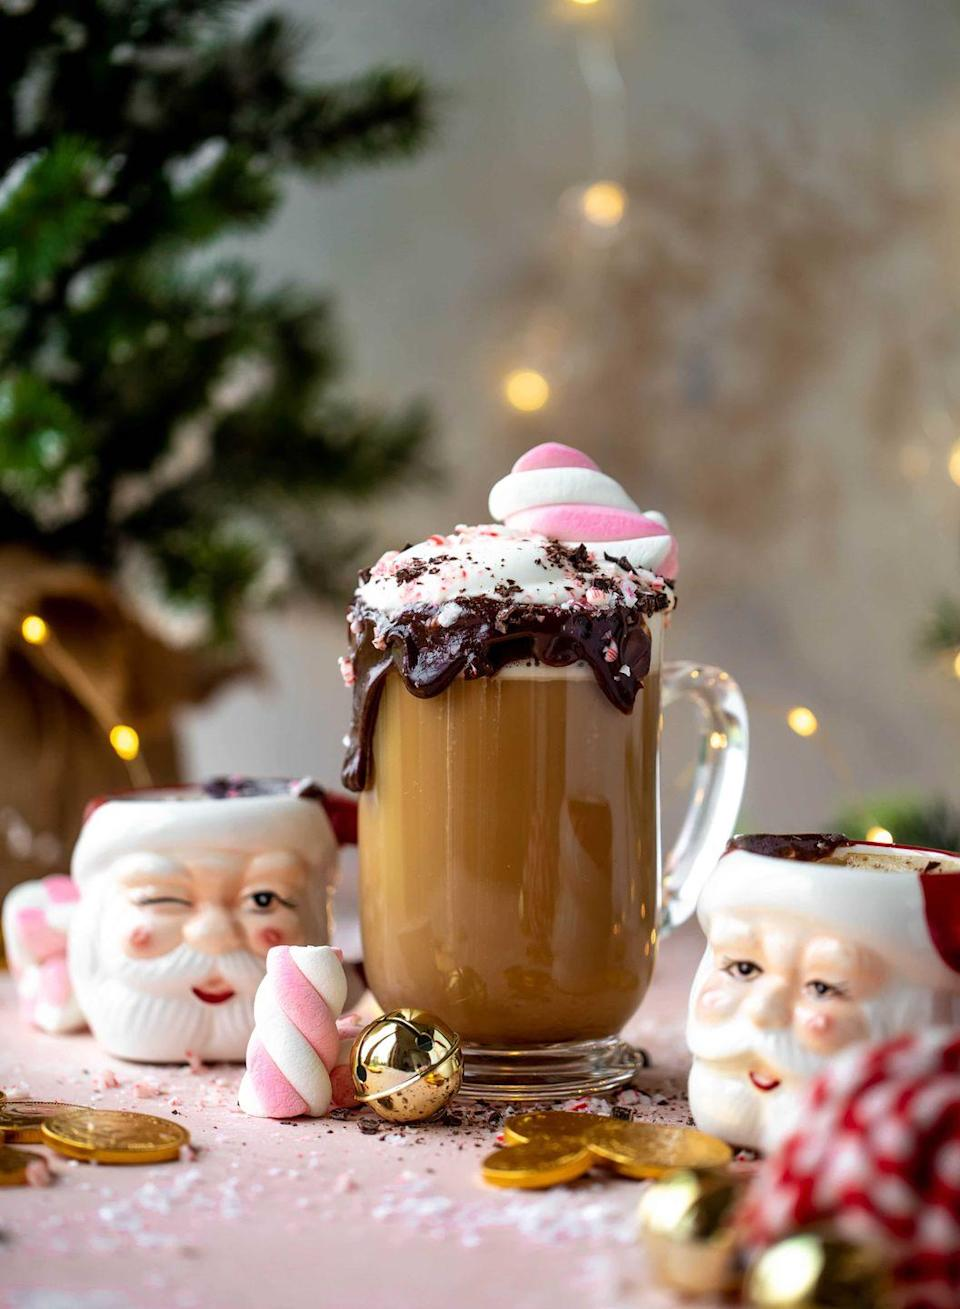 """<p>If you've been up all night playing Santa, this coffee-based whiskey cocktail is just the thing you need to put a little pep in your step on Christmas day. </p><p><em>Get the recipe at <a href=""""https://www.howsweeteats.com/2019/12/saint-nick-special-cocktail/"""" rel=""""nofollow noopener"""" target=""""_blank"""" data-ylk=""""slk:How Sweet Eats"""" class=""""link rapid-noclick-resp"""">How Sweet Eats</a>. </em></p>"""